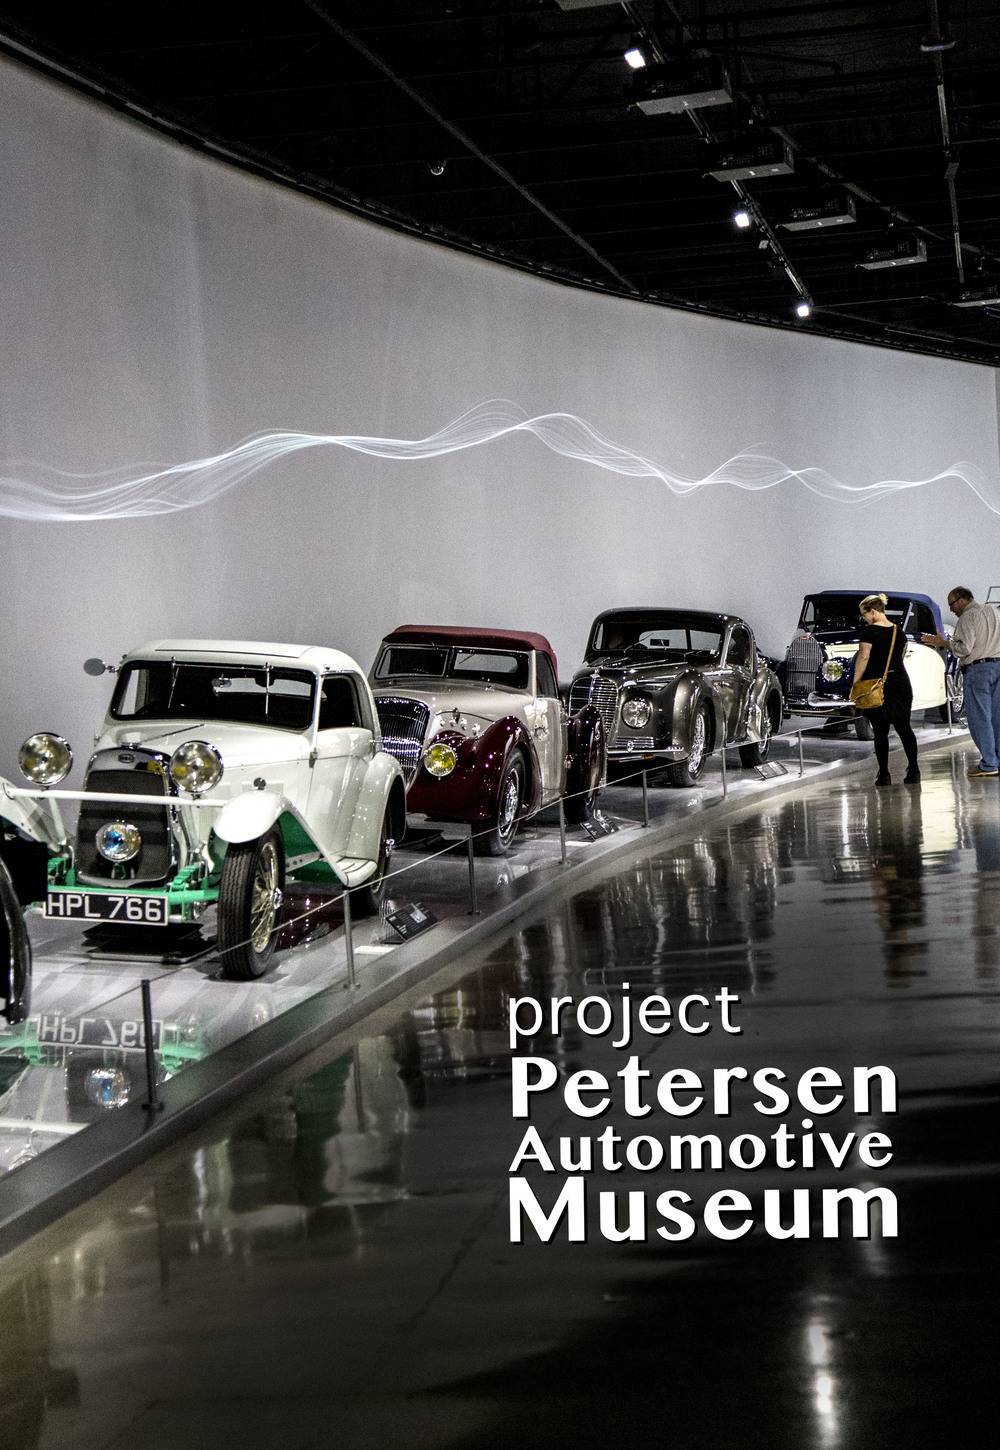 PETERSEN AUTOMOTIVE MUSEUM, cars, cars, cars…